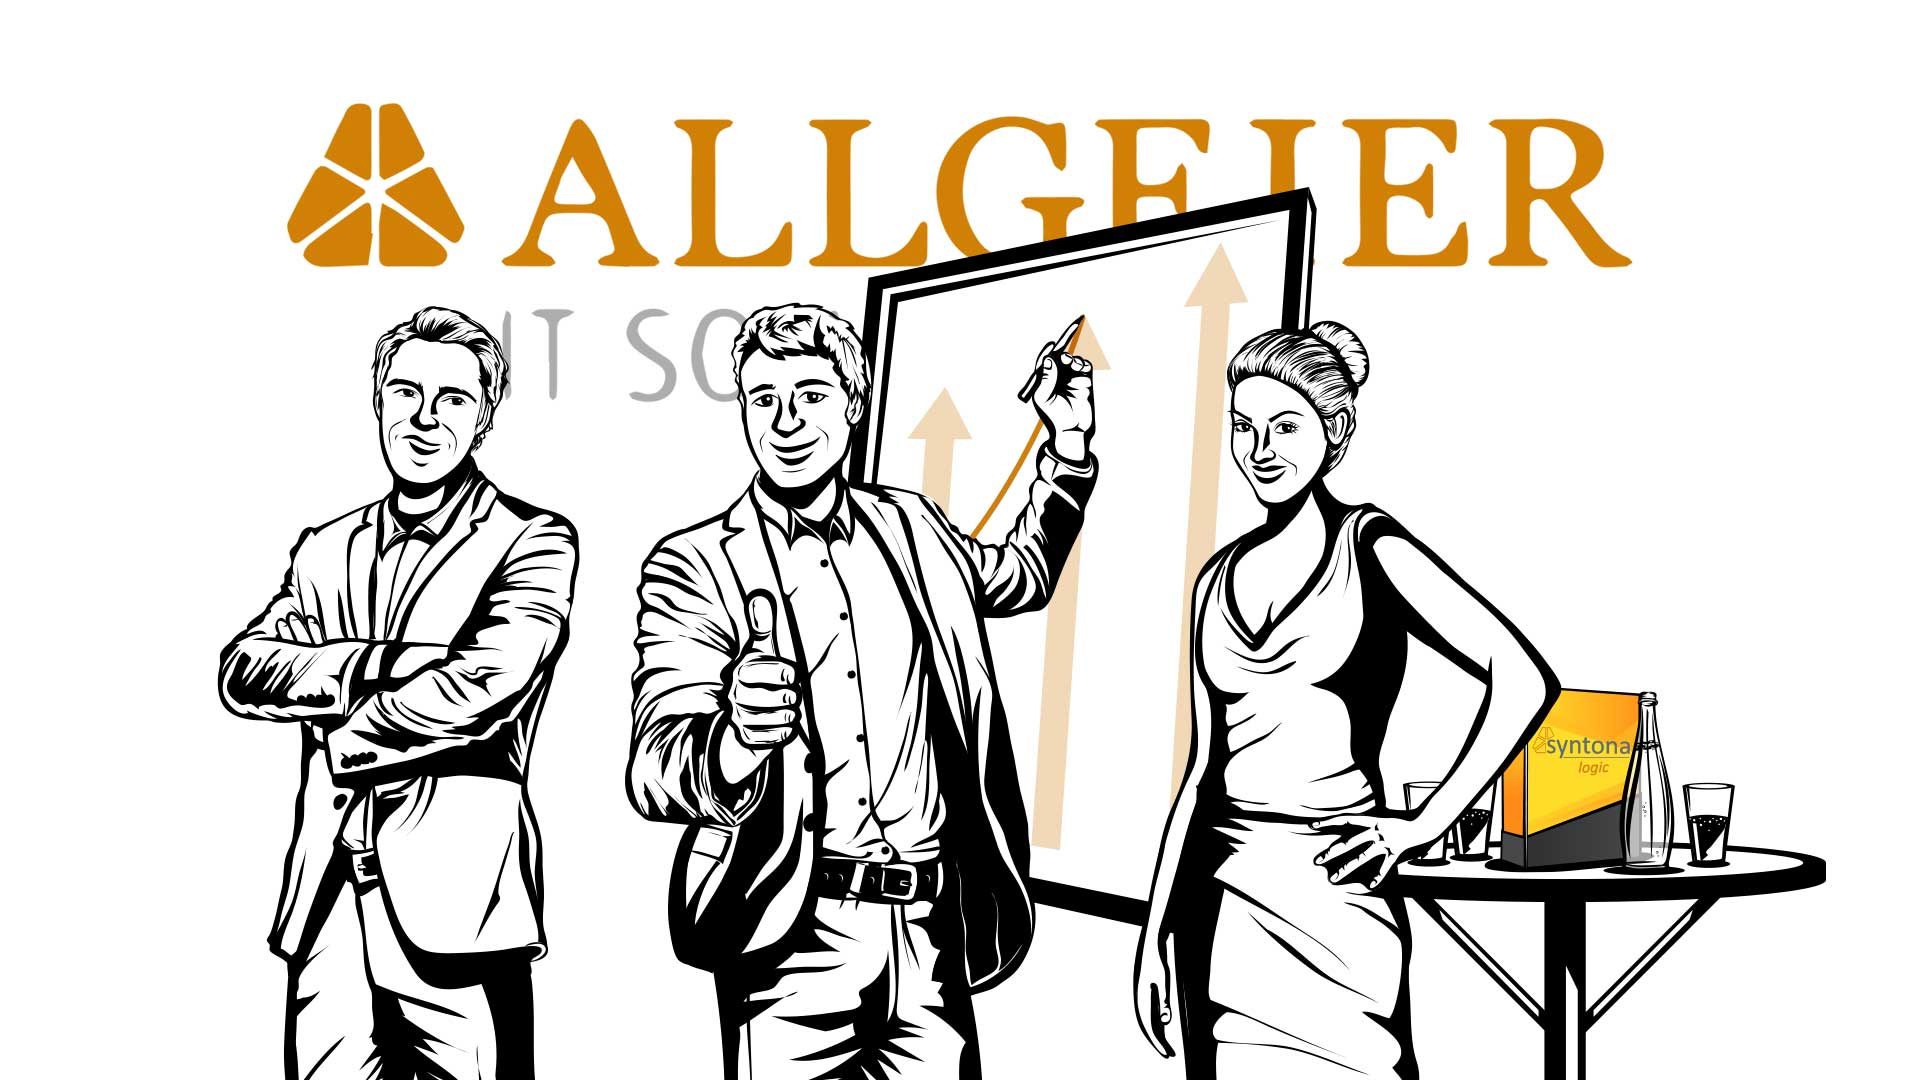 Allgeier IT Solutions syntona logic